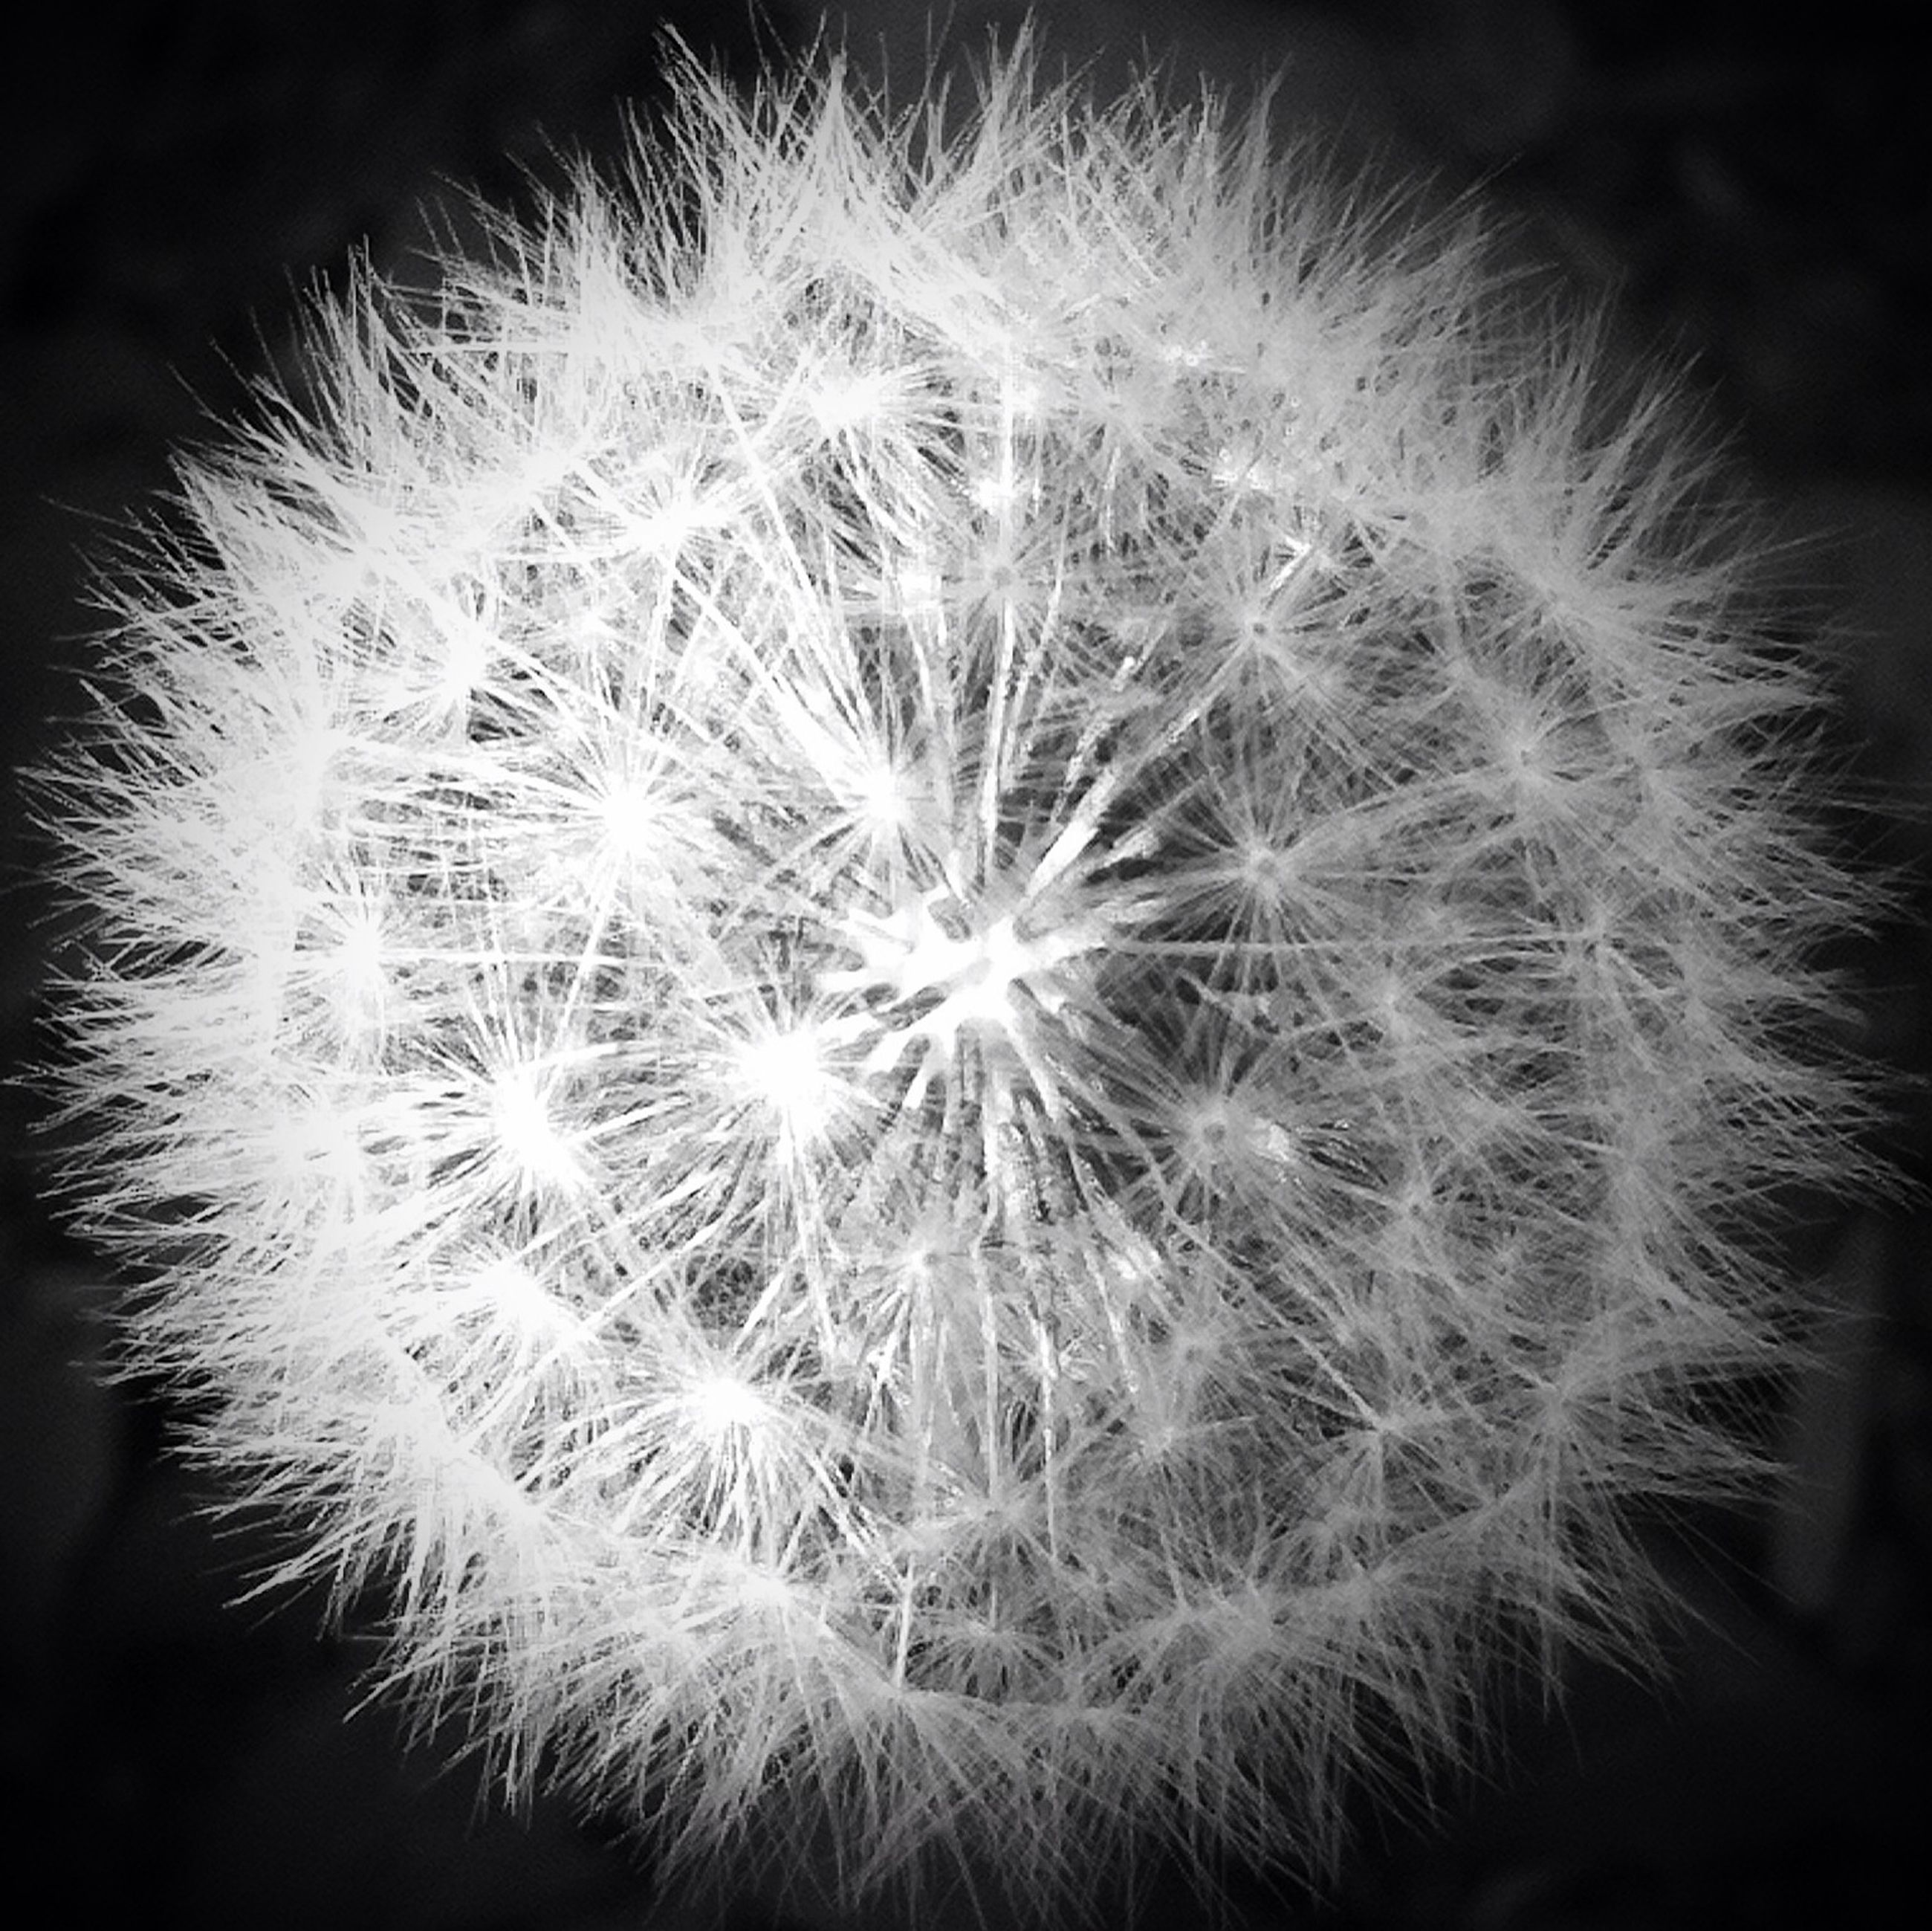 flower, dandelion, flower head, fragility, freshness, growth, close-up, beauty in nature, single flower, nature, softness, petal, in bloom, focus on foreground, plant, white color, botany, selective focus, blossom, uncultivated